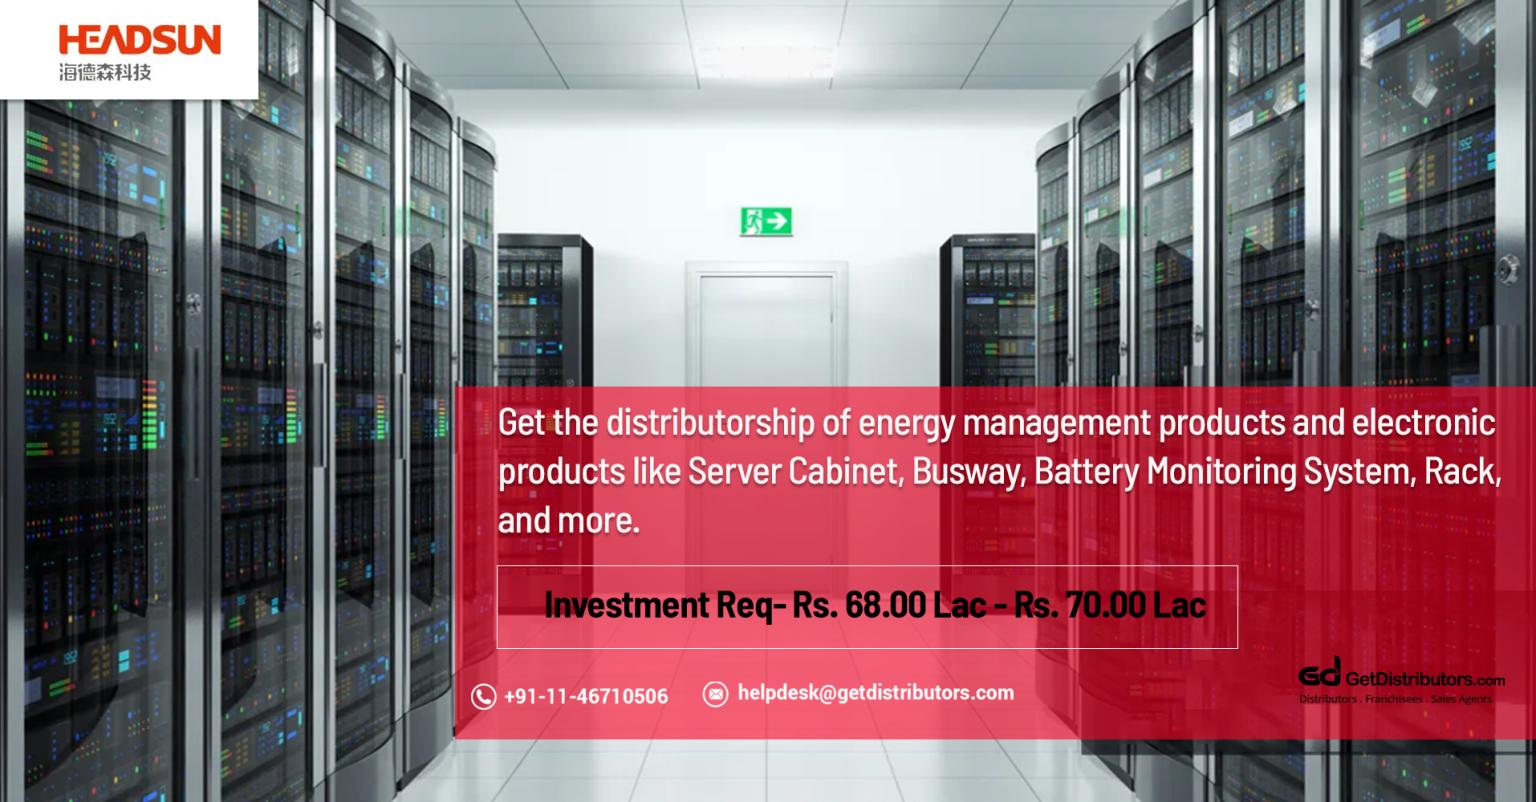 Electronics And Energy Management Products At Affordable Rates